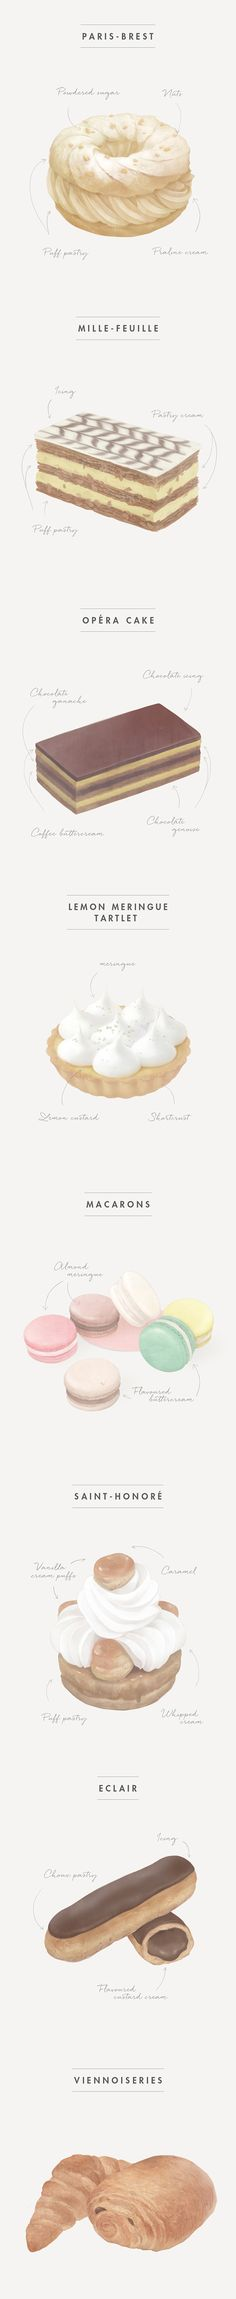 Illustration and Design from the illustrator HSIAO-RON CHENG for a guide book of Paris finest pastry shops, published in Paris. Stage Patisserie, French Patisserie, Pastry Art, Pastry Shop, Dessert Illustration, Illustration Art, Food Sketch, Cake Sketch, Pinterest Instagram